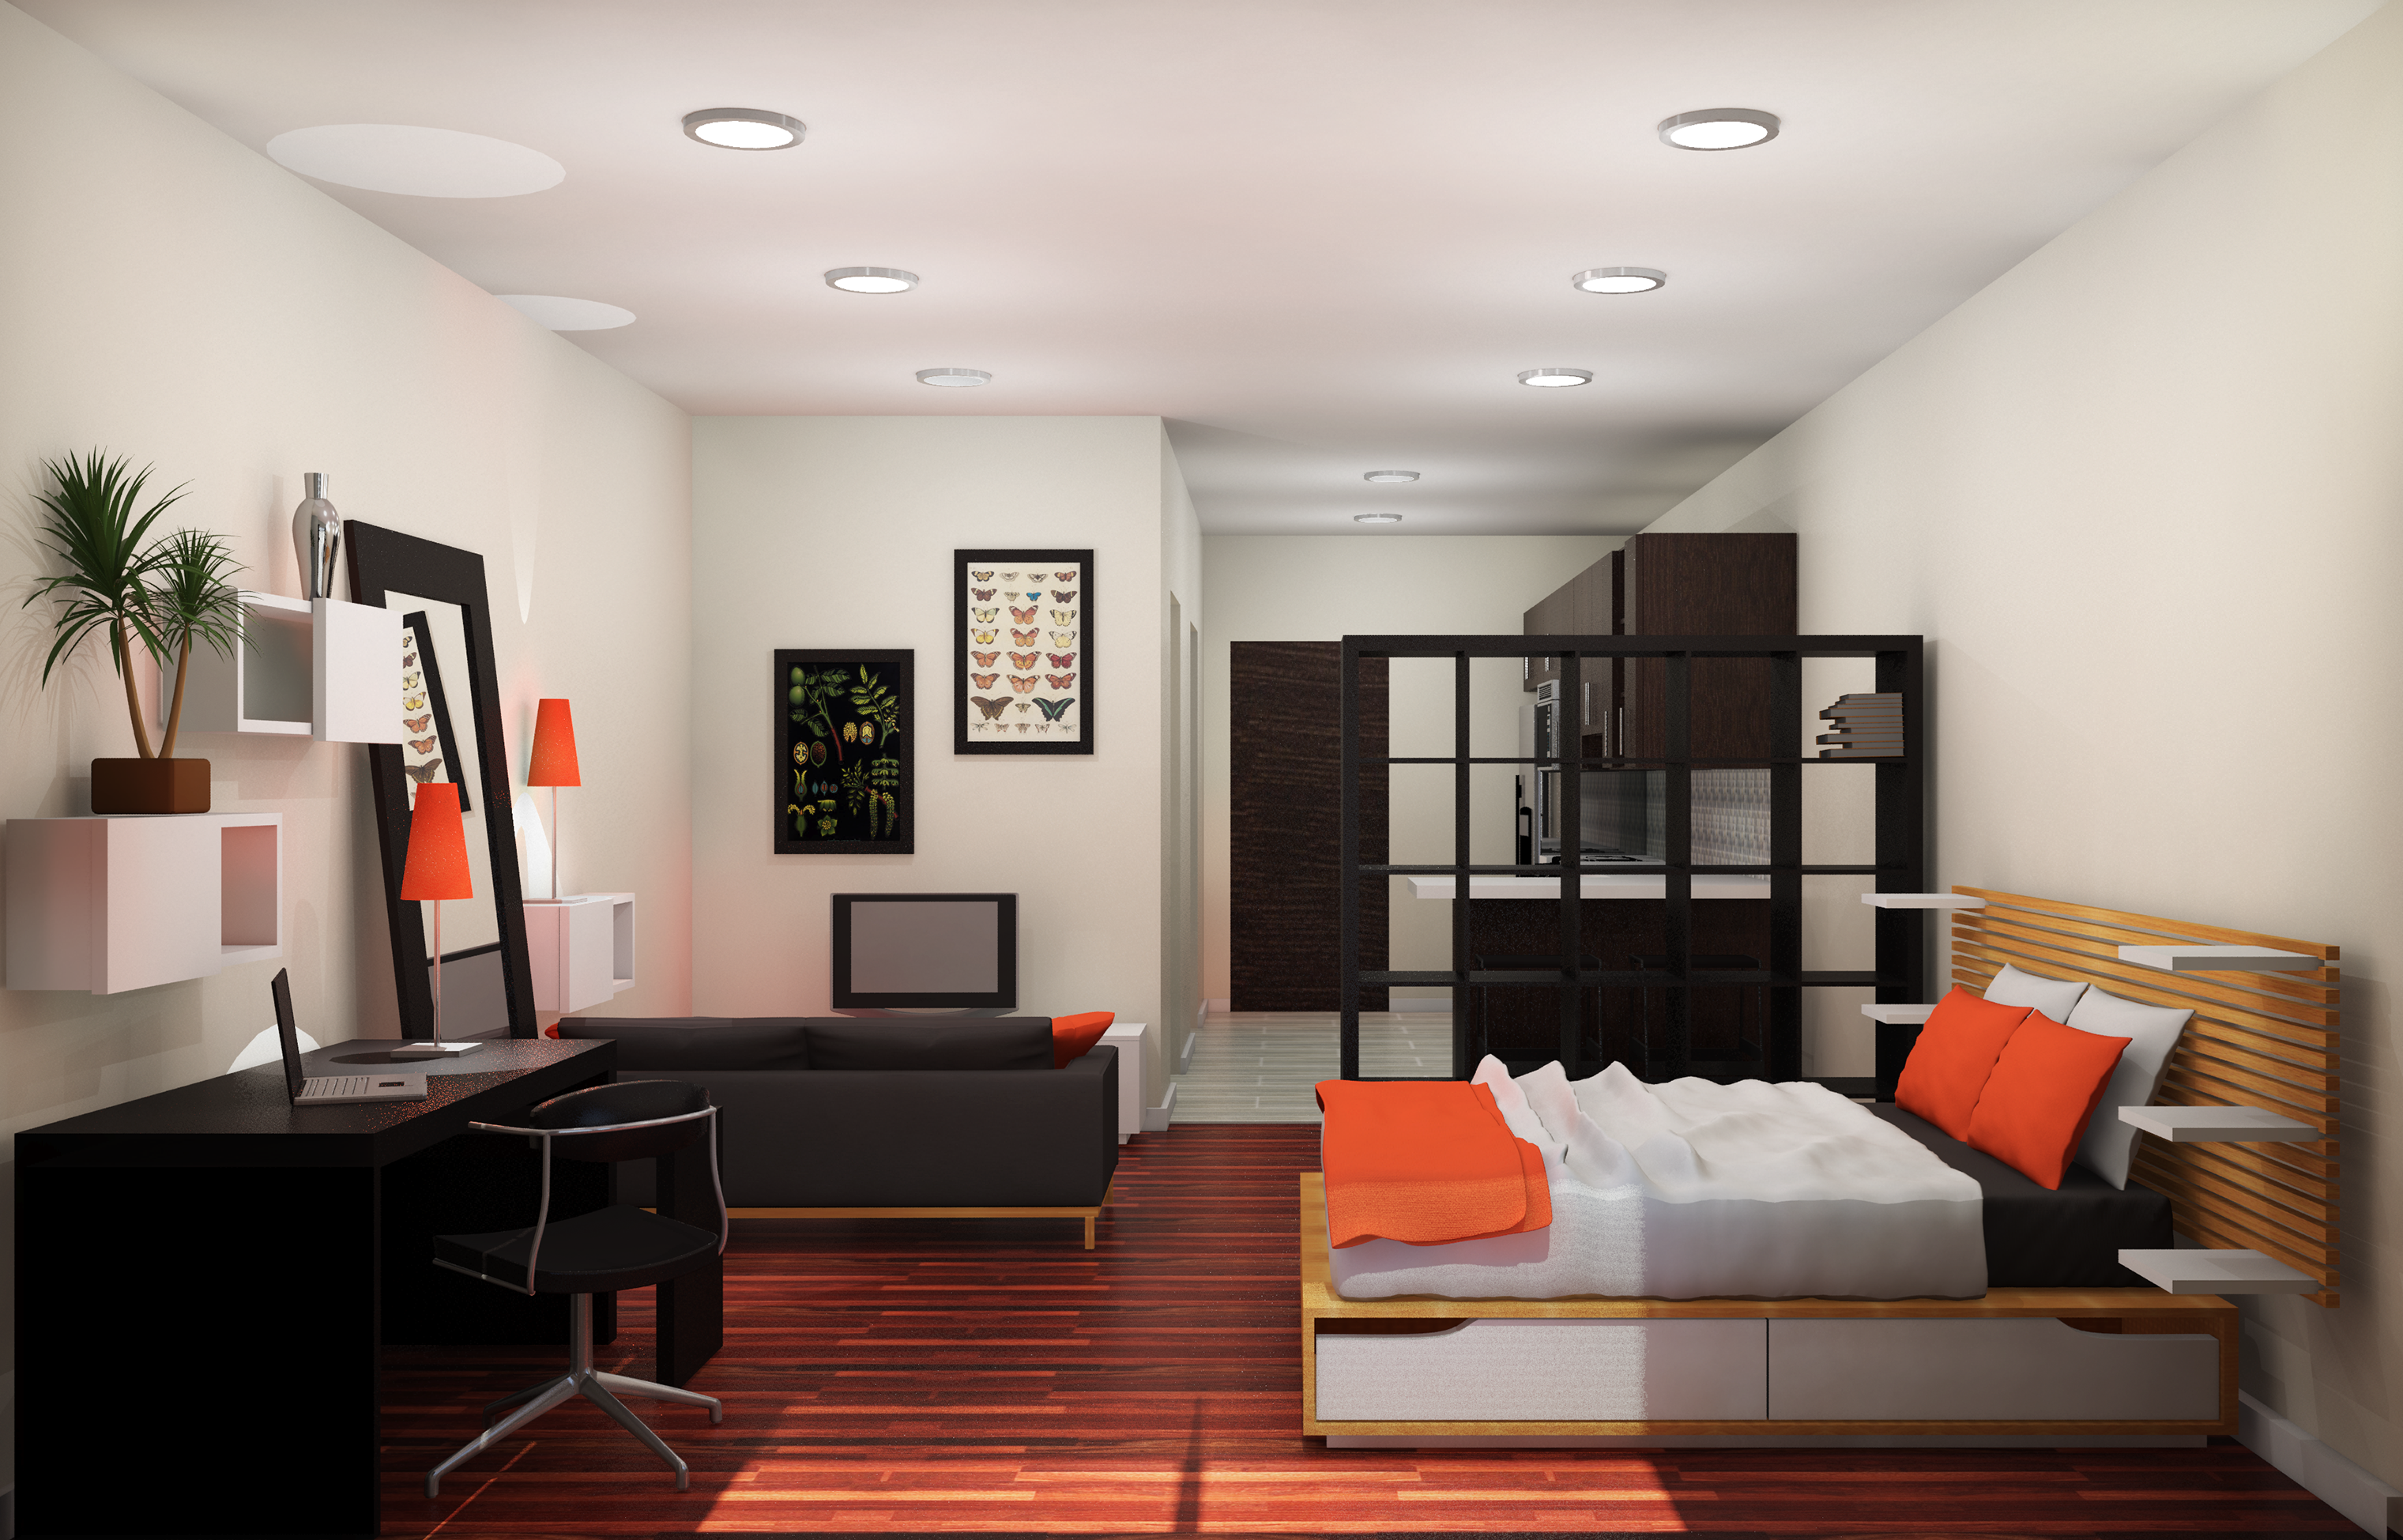 Small Apartments Design Pictures mini studio apartment ideas small studio apartment. design ideas